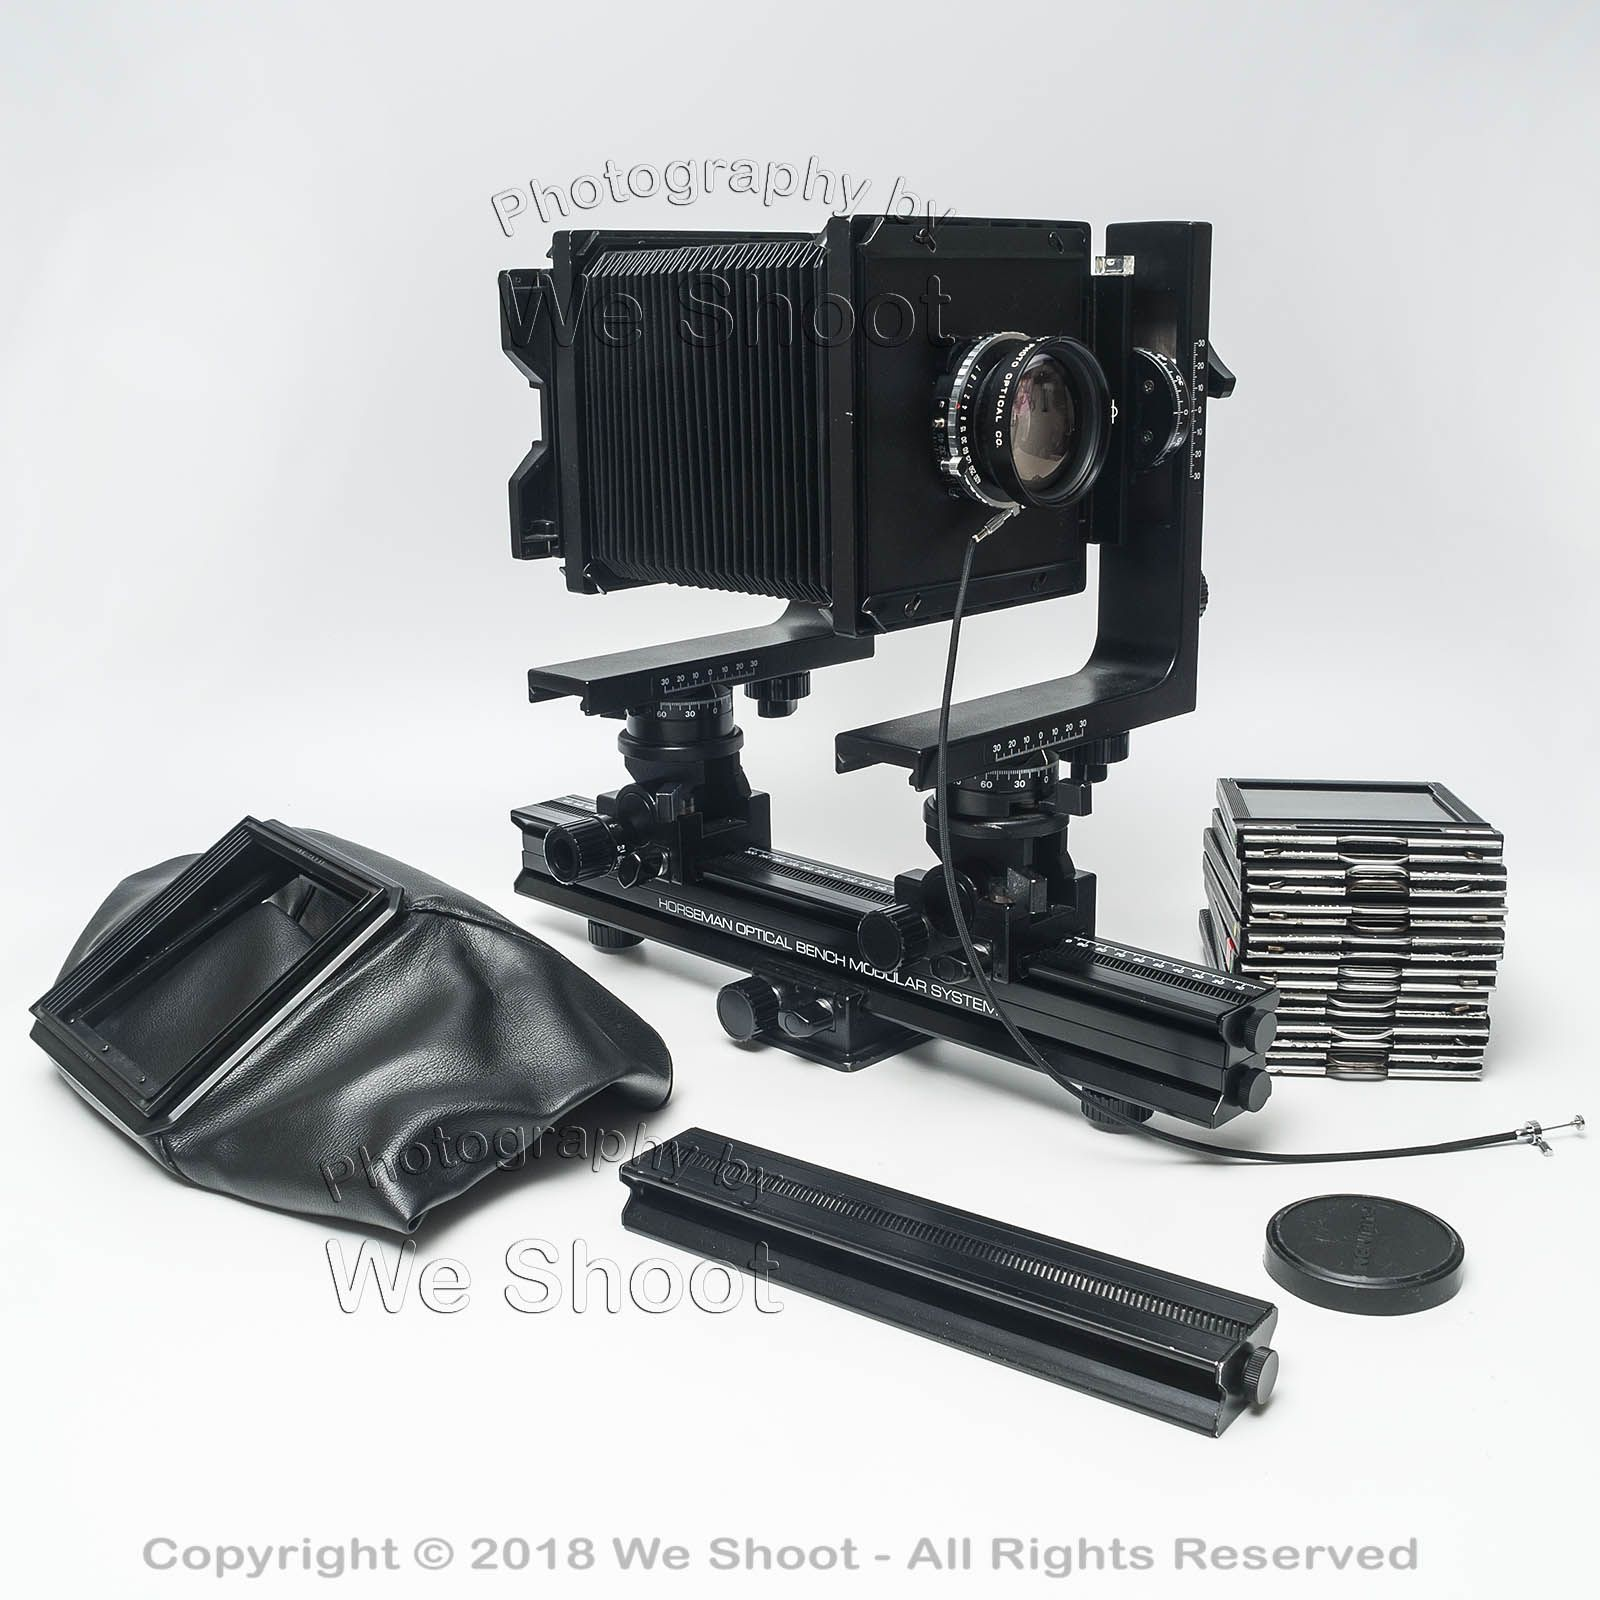 4x5 optical bench camera and accessories seattle commercial